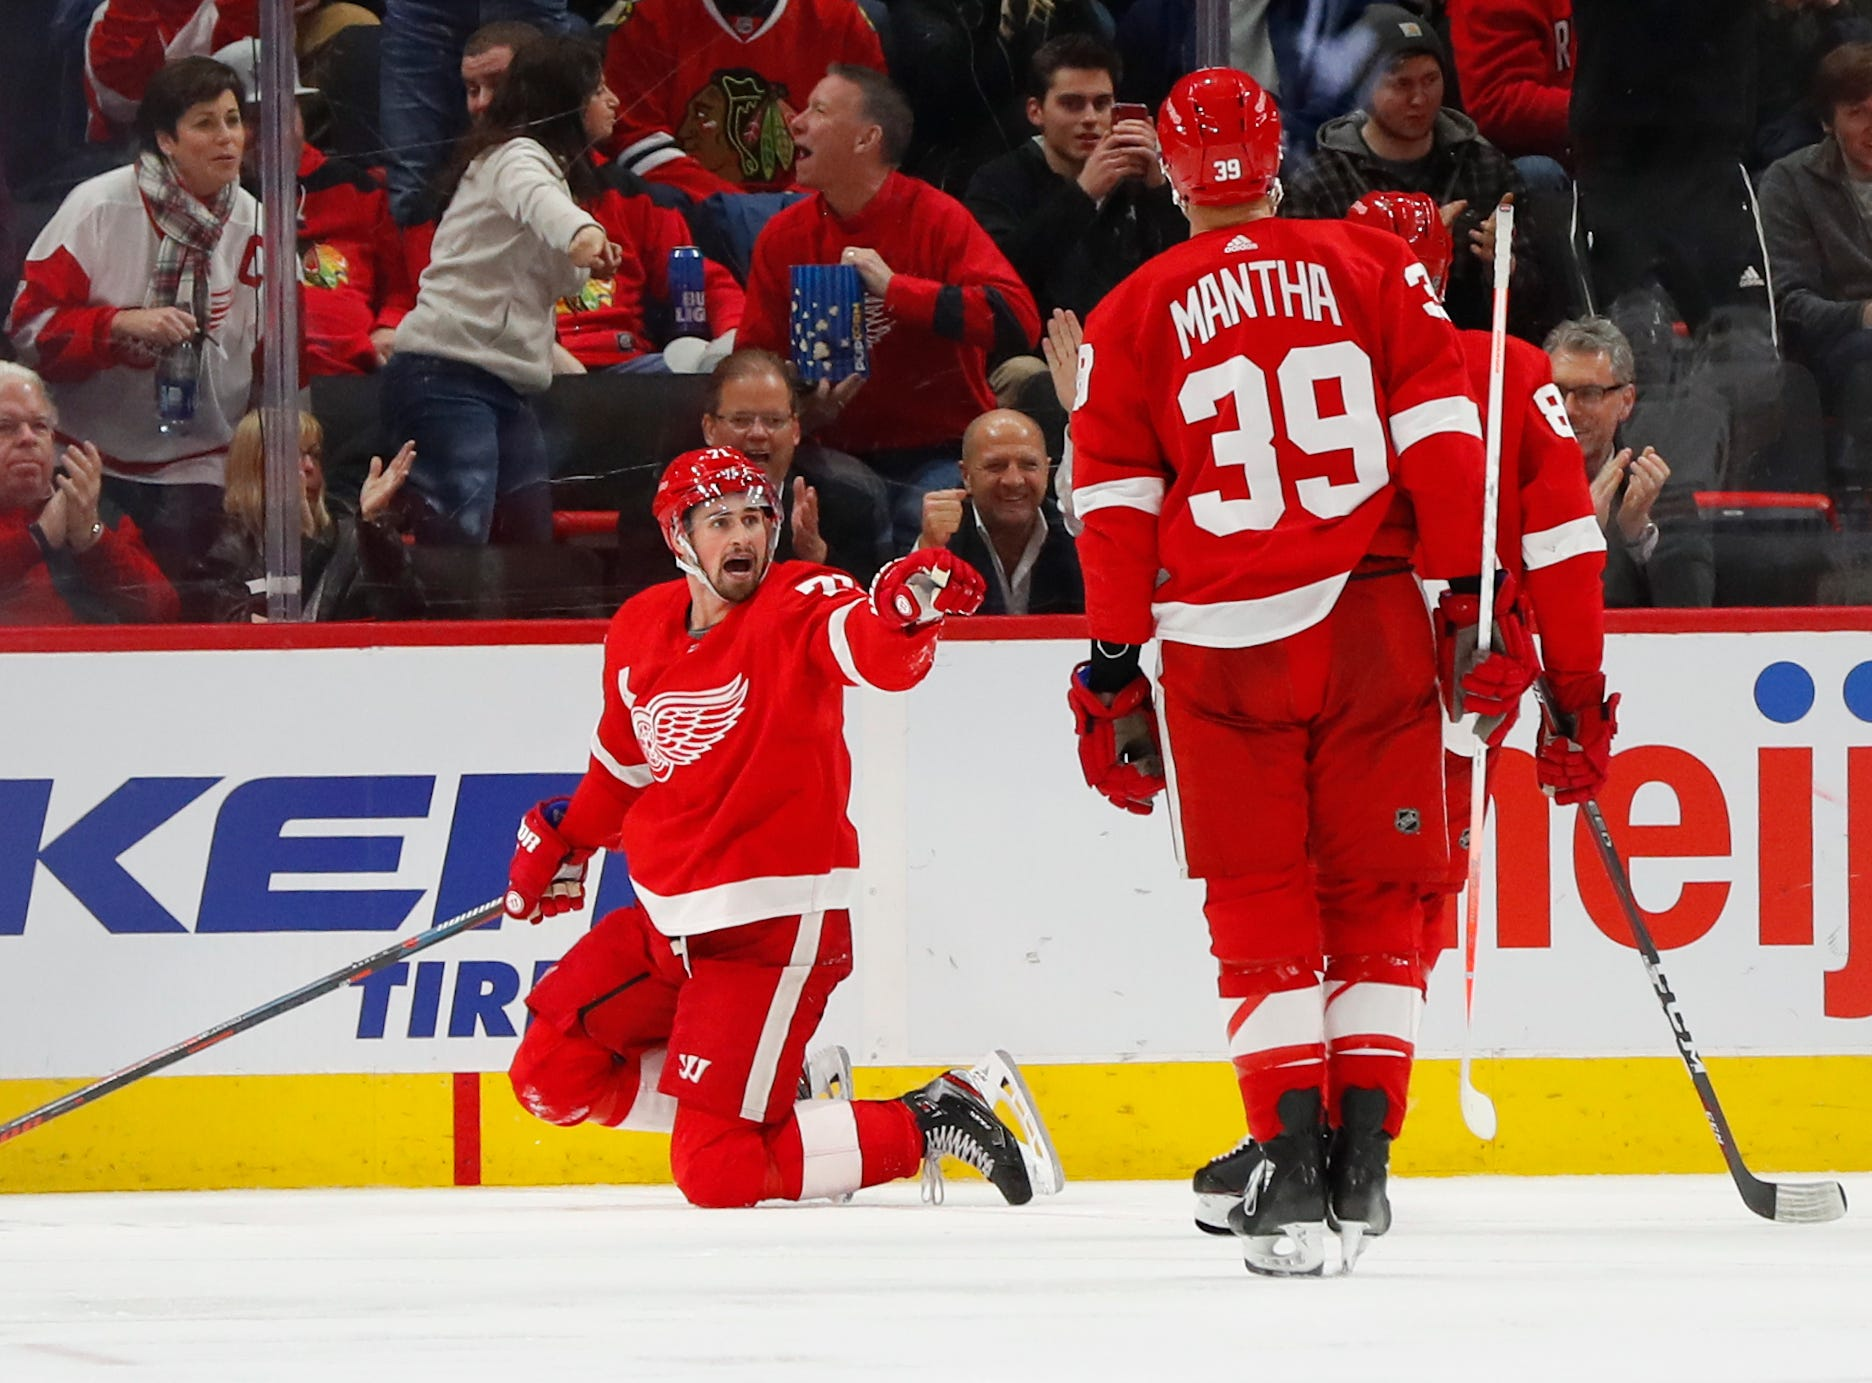 Detroit Red Wings center Dylan Larkin, left, celebrates his goal against the Chicago Blackhawks in the third period of an NHL hockey game Wednesday, Feb. 20, 2019, in Detroit.